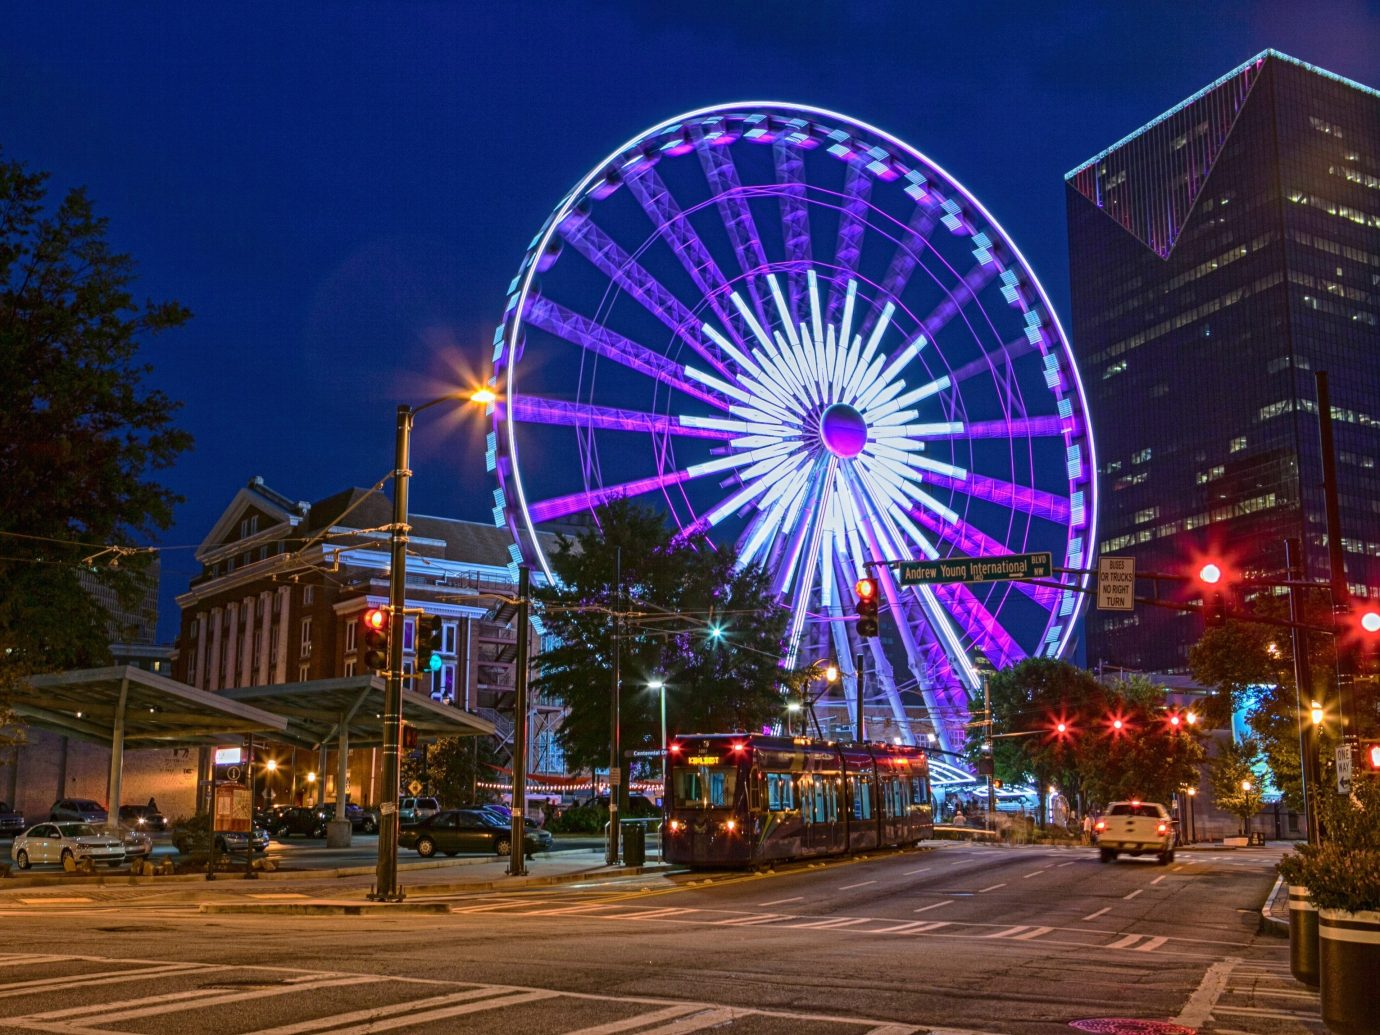 Trip Ideas outdoor ferris wheel geographical feature night outdoor recreation outdoor object amusement park tourist attraction recreation cityscape park colorful